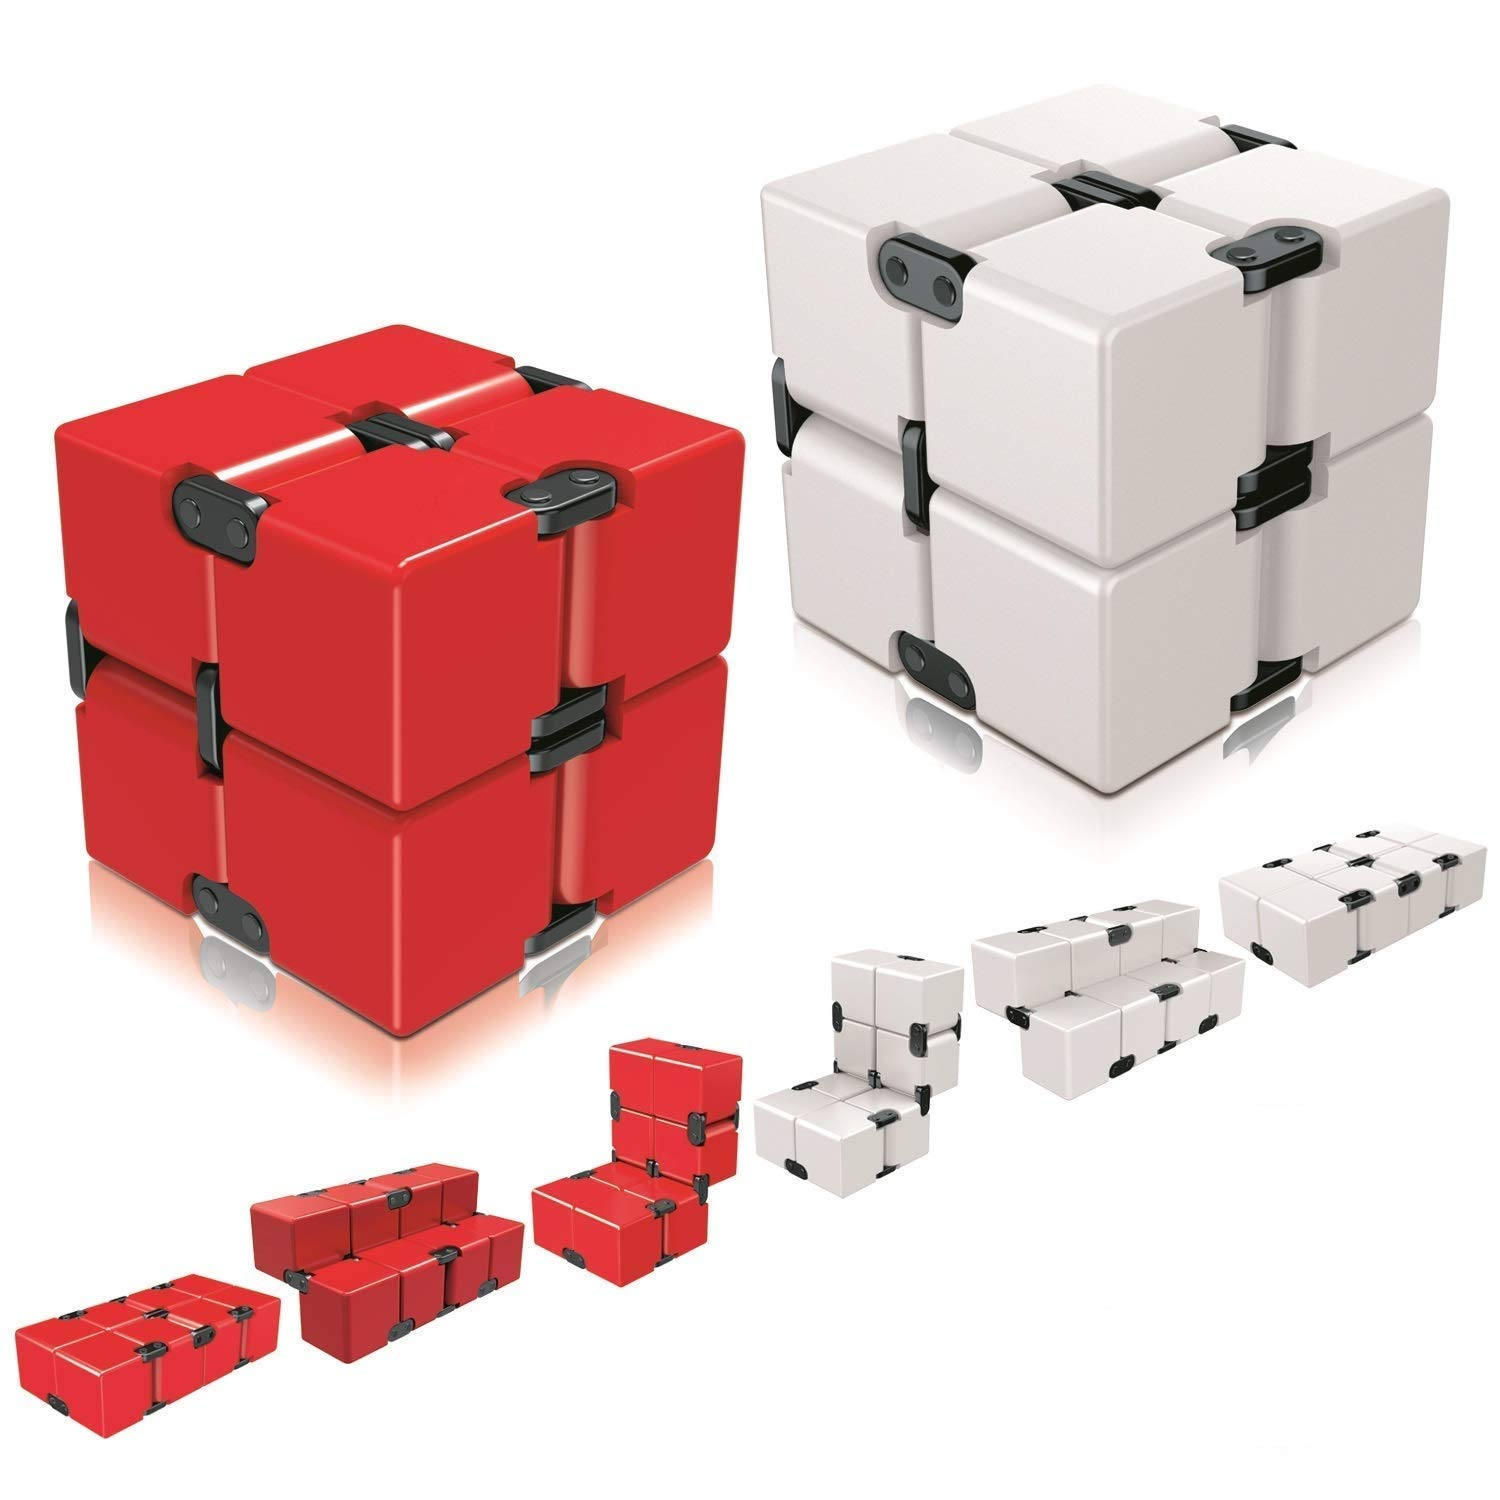 Ganowo Infinity Cube Fidget Toy for Kids and Adults, Fidget Cube Cool Mini Magic Cube Gadget Spinner for Stress and Anxiety Relief and Kill Time (Red&White)